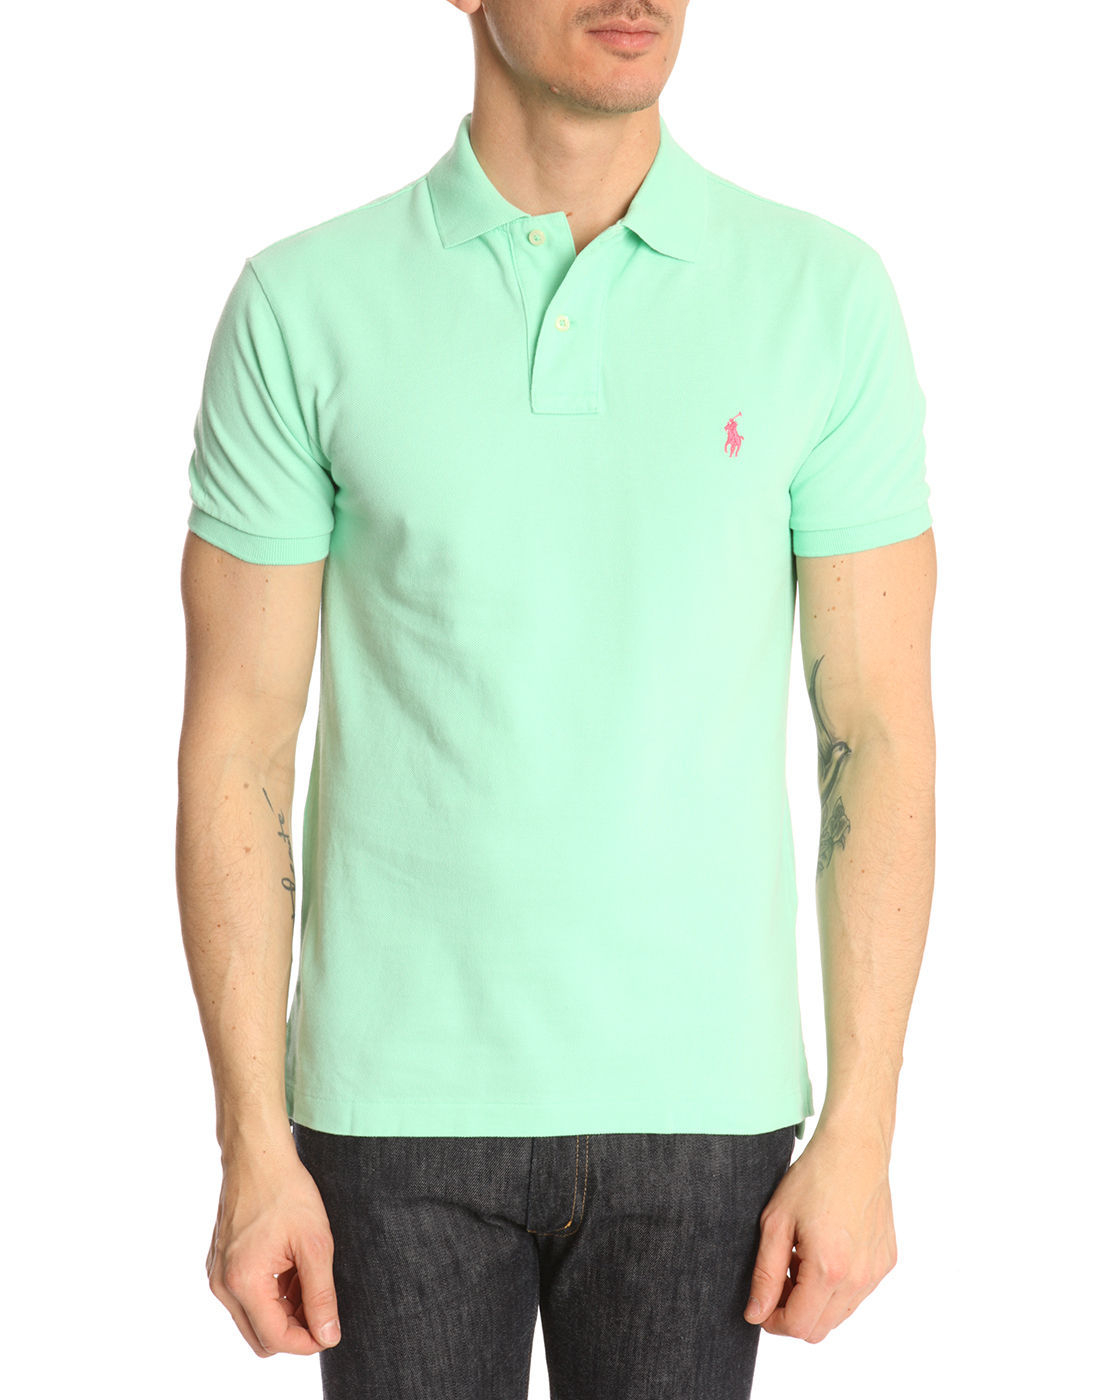 Polo ralph lauren mint green slimfit polo shirt in green for Mint color polo shirt